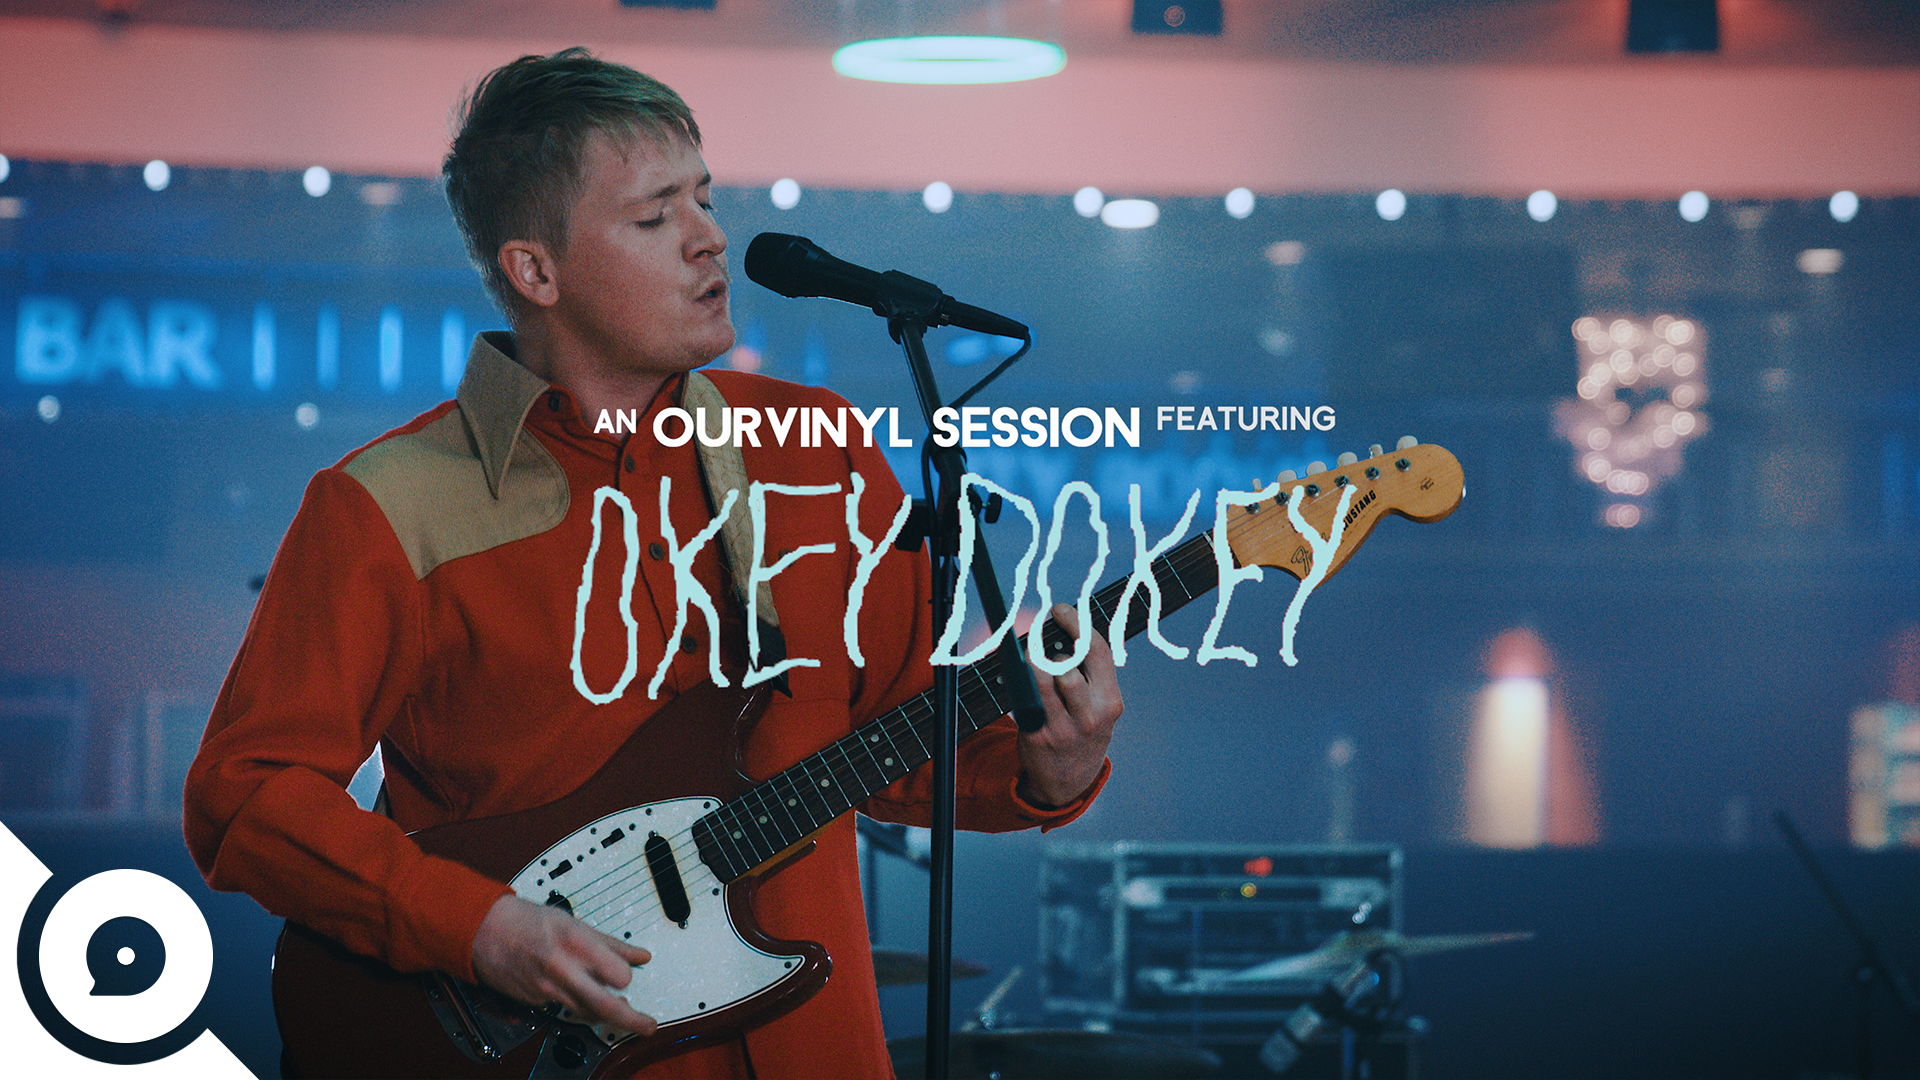 Okey Dokey - When They Get Older   OurVinyl Sessions